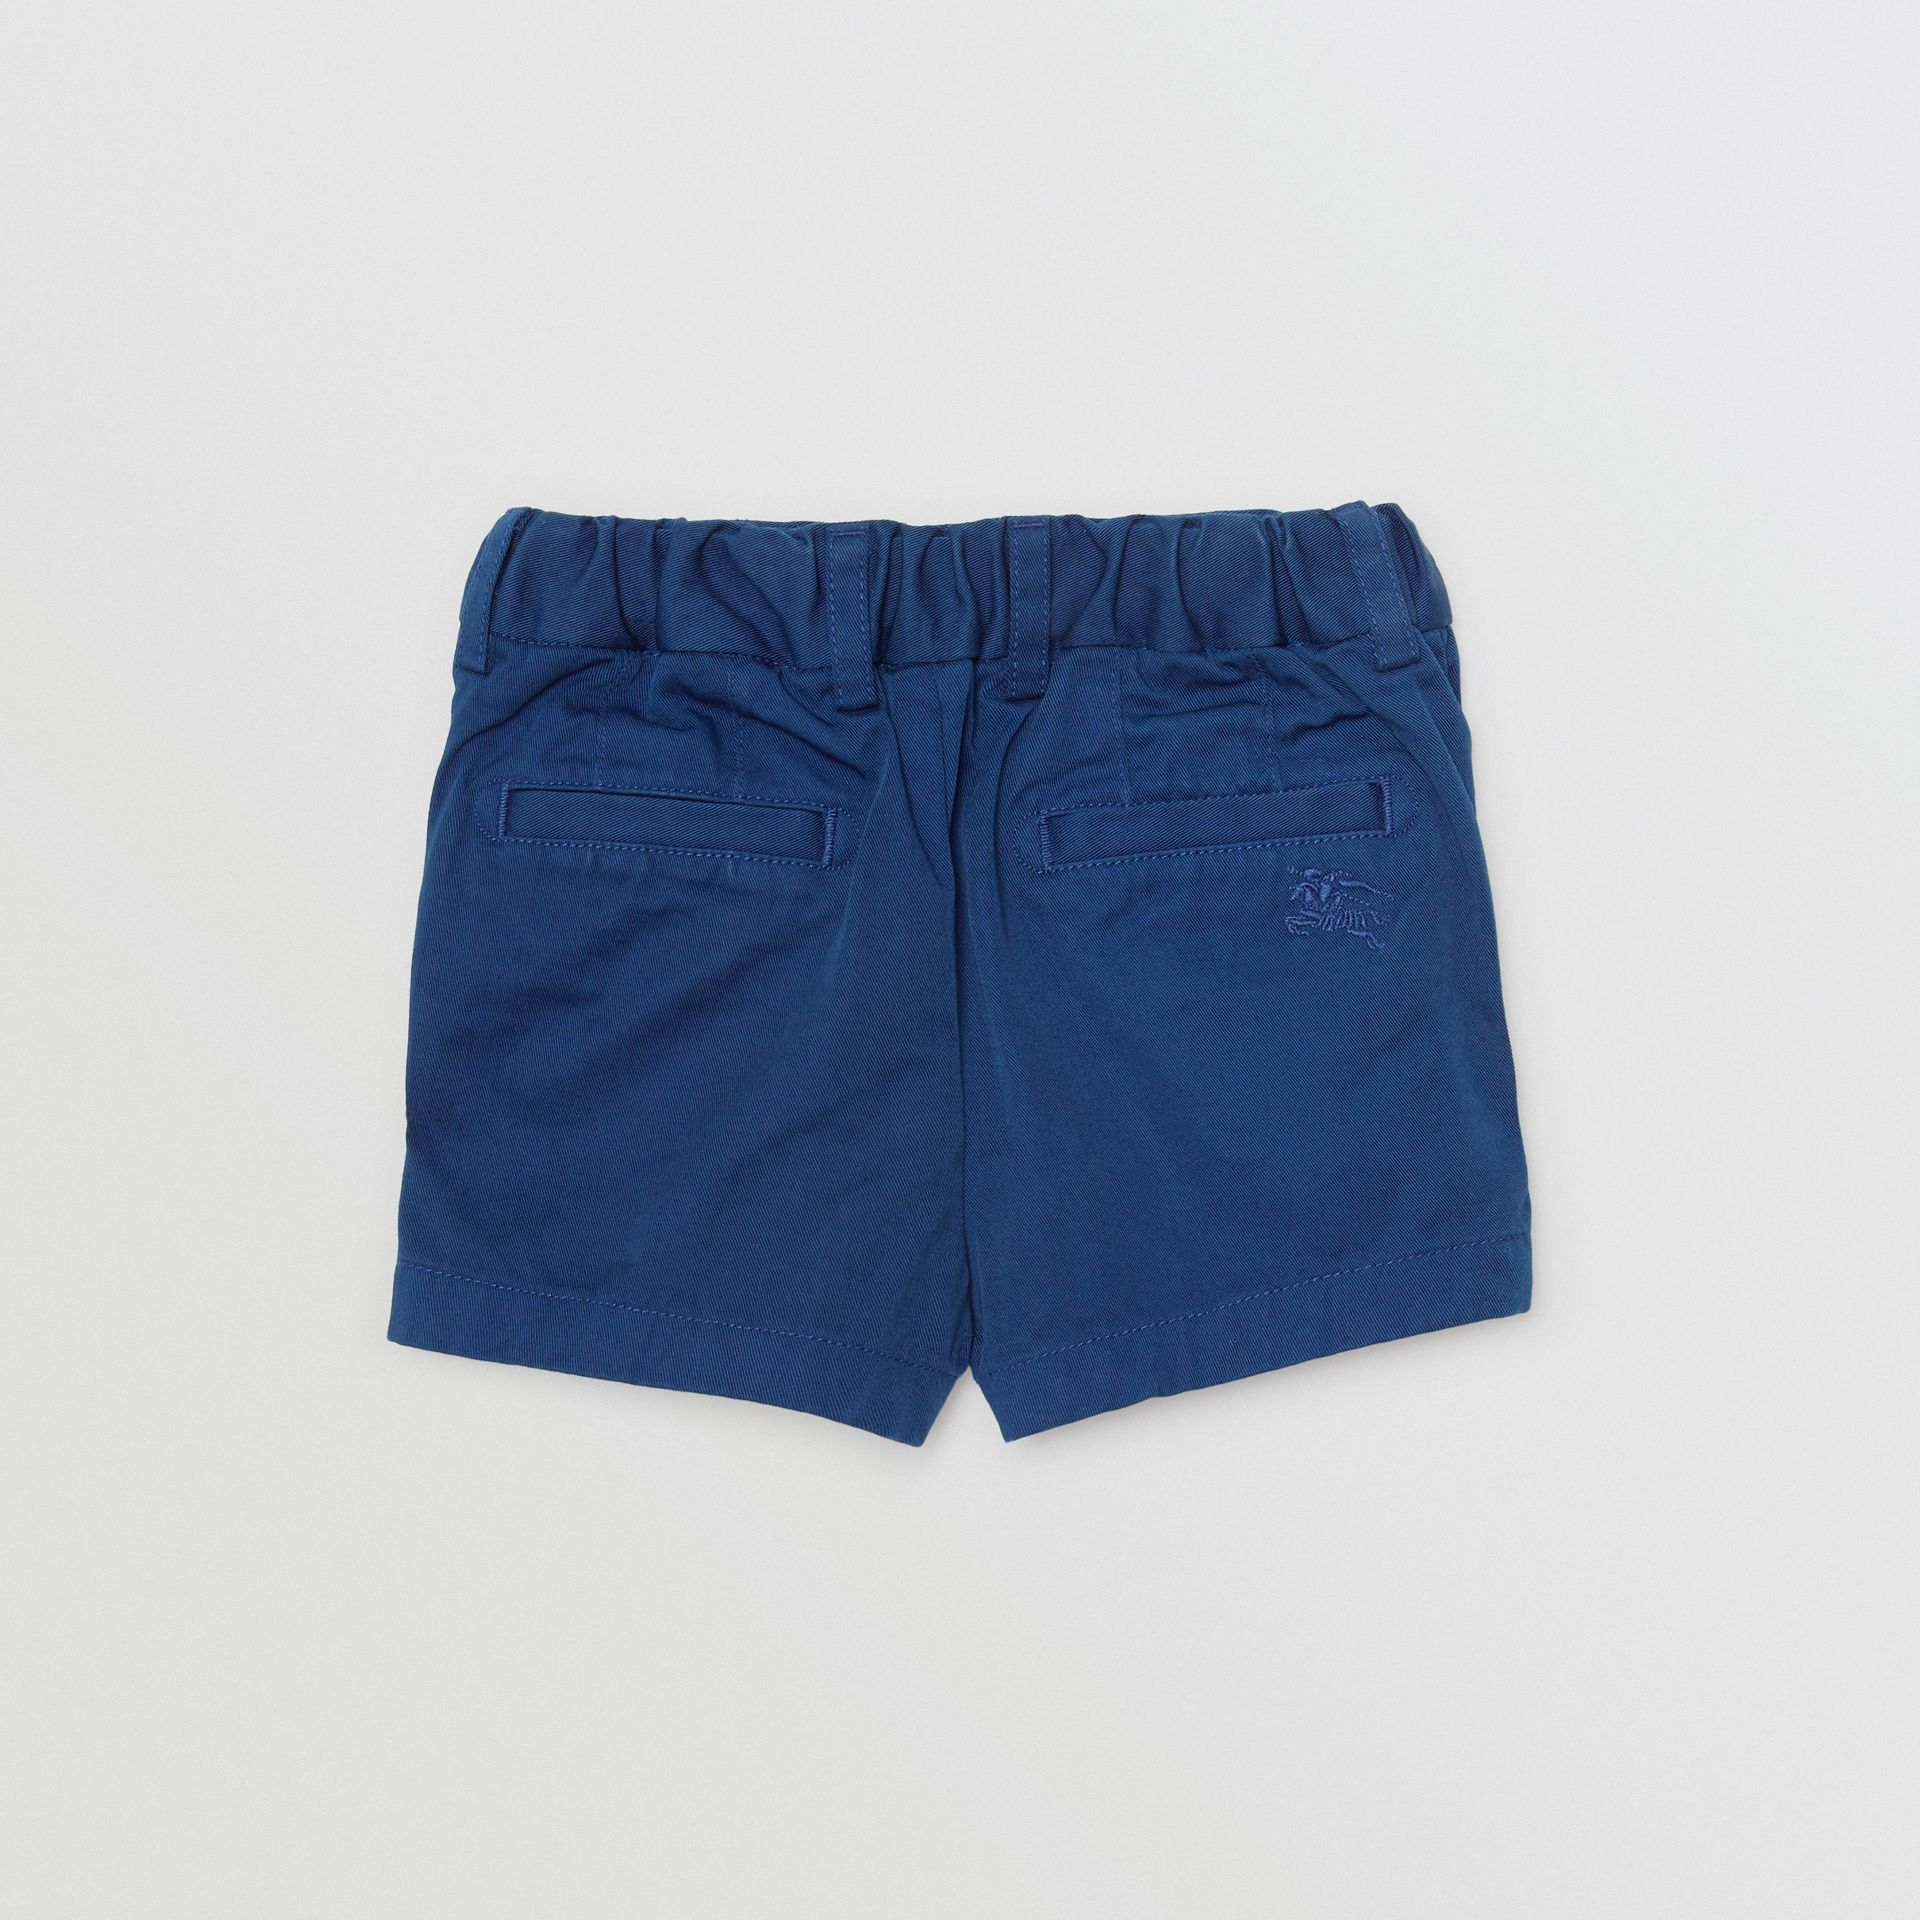 Cotton Chino Shorts in Bright Navy - Children | Burberry Australia - gallery image 3